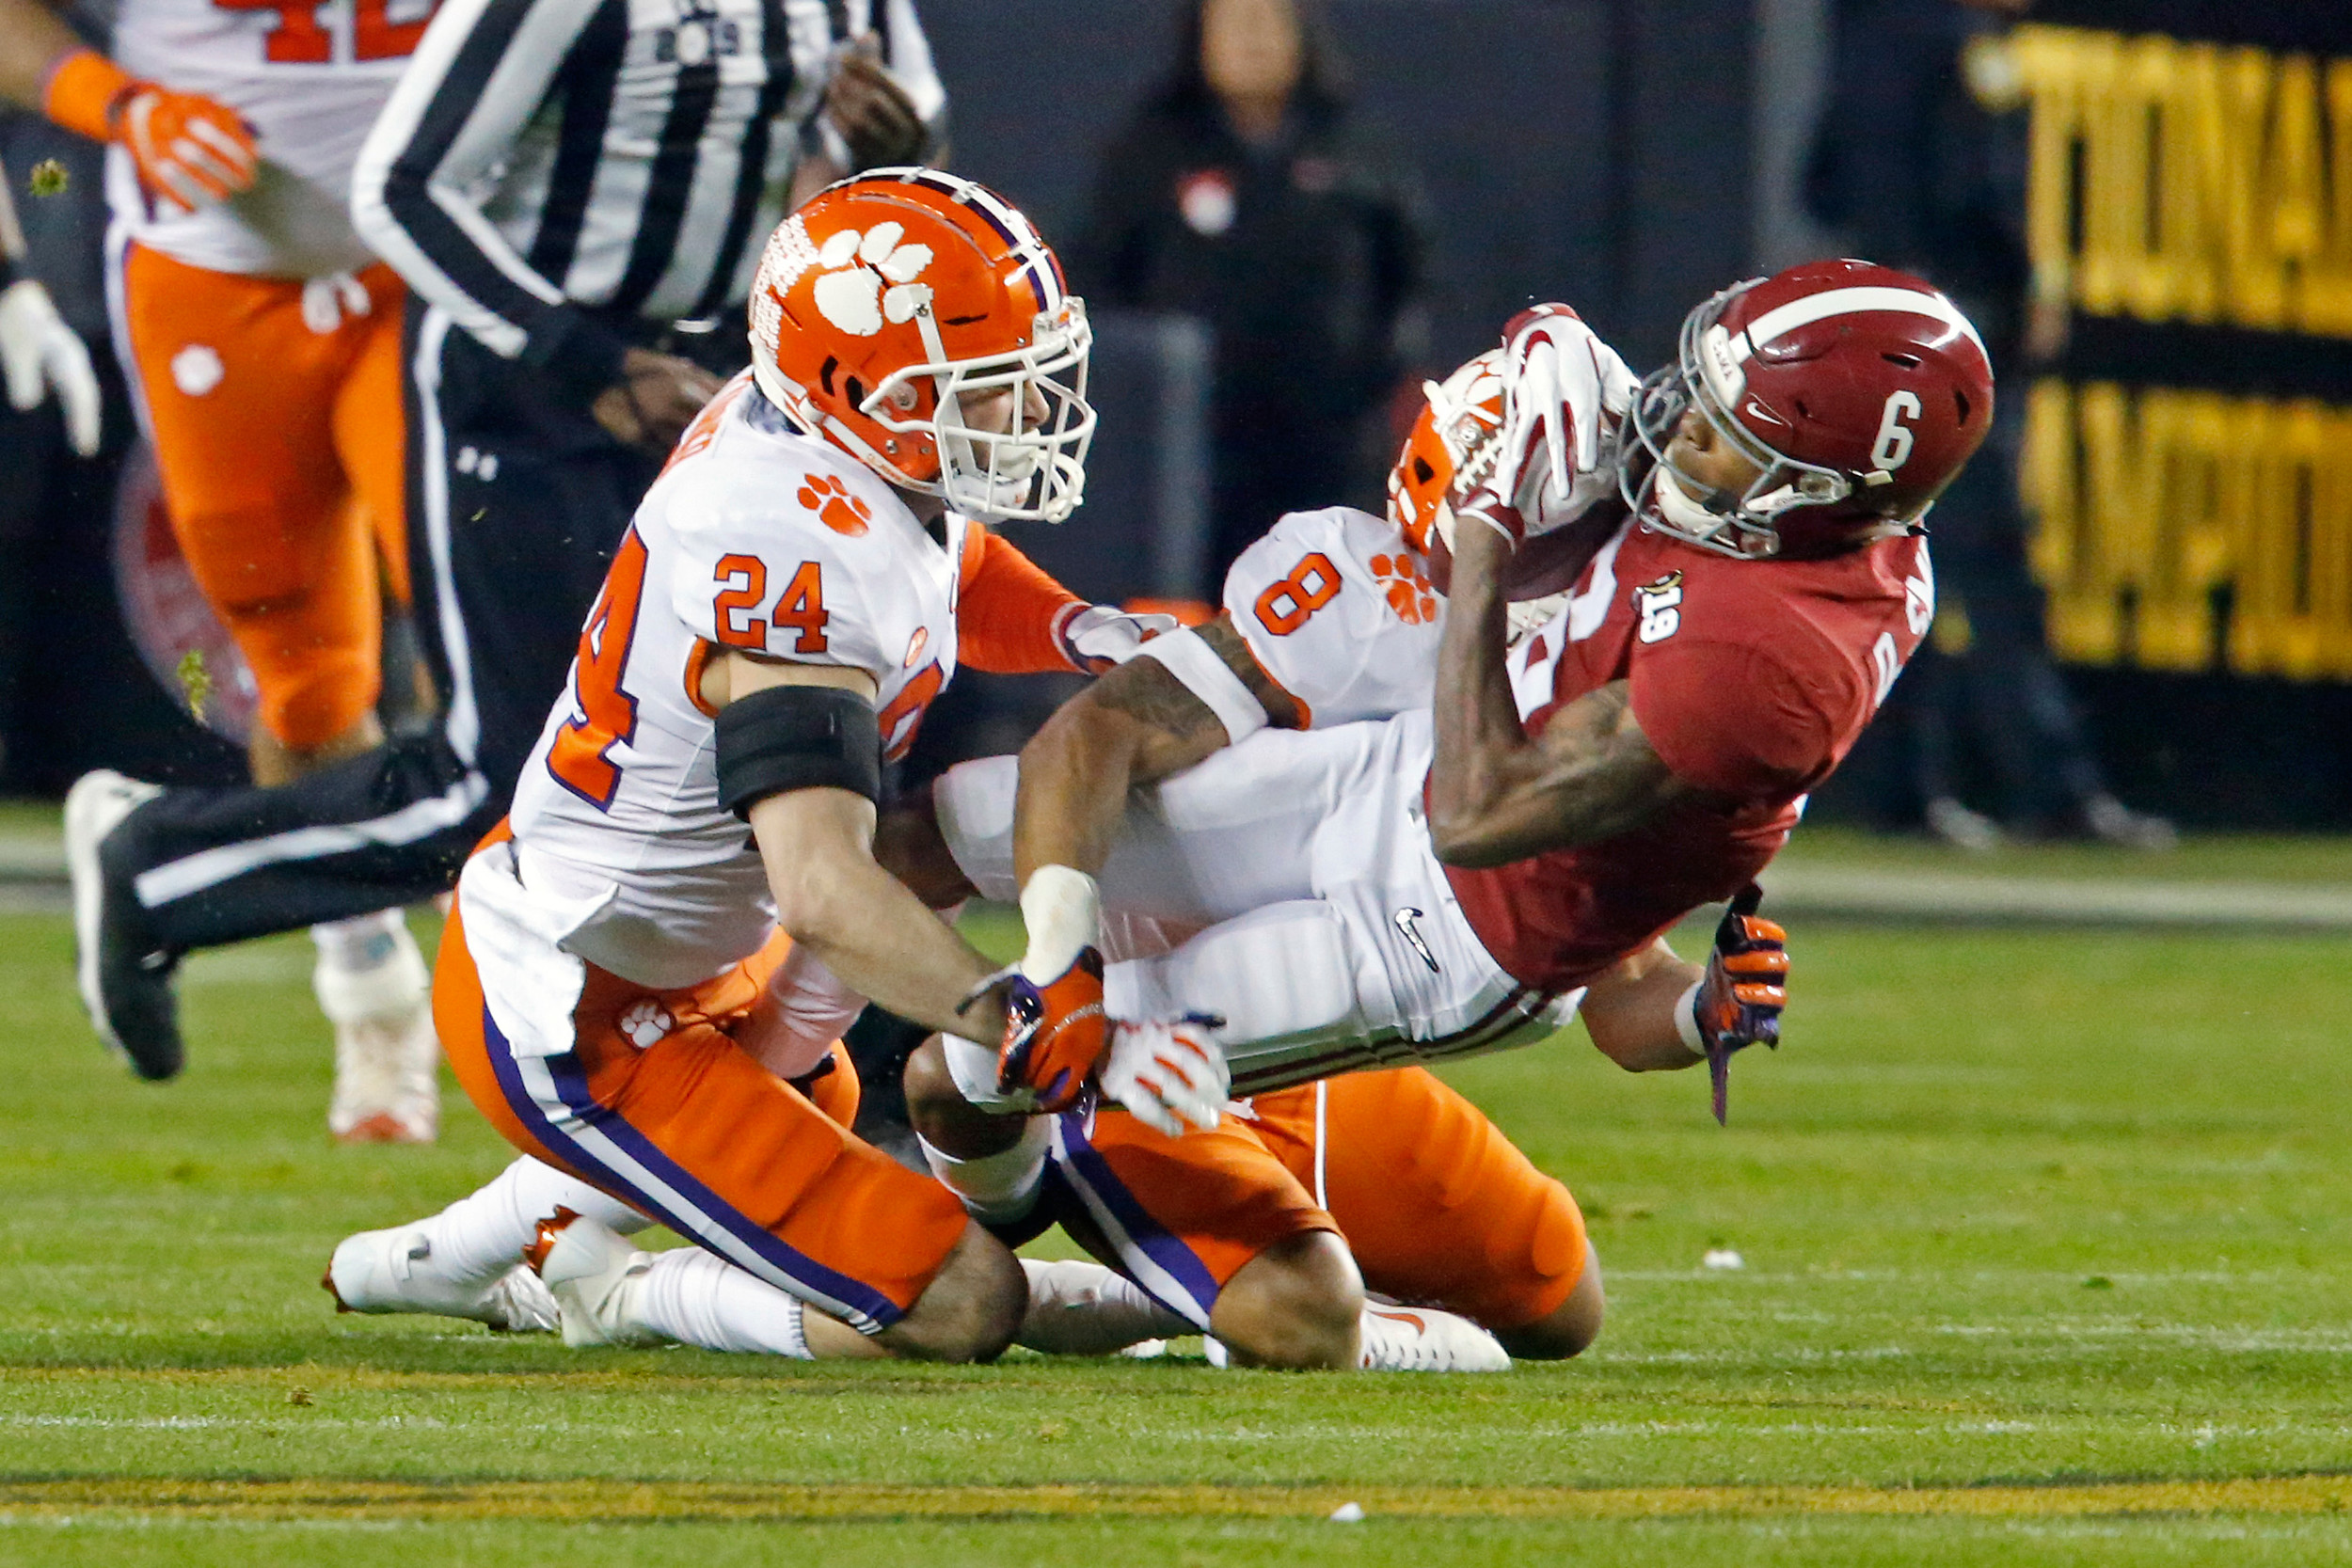 Clemson safety Nolan Turner (24) puts a hard hit on Alabama wide receiver DeVonte Smith (6) during the NCAA college football national championship game between Clemson University and the University of Alabama in Santa Clara, CA. Credit: Jason Clark / Daily Mountain Eagle